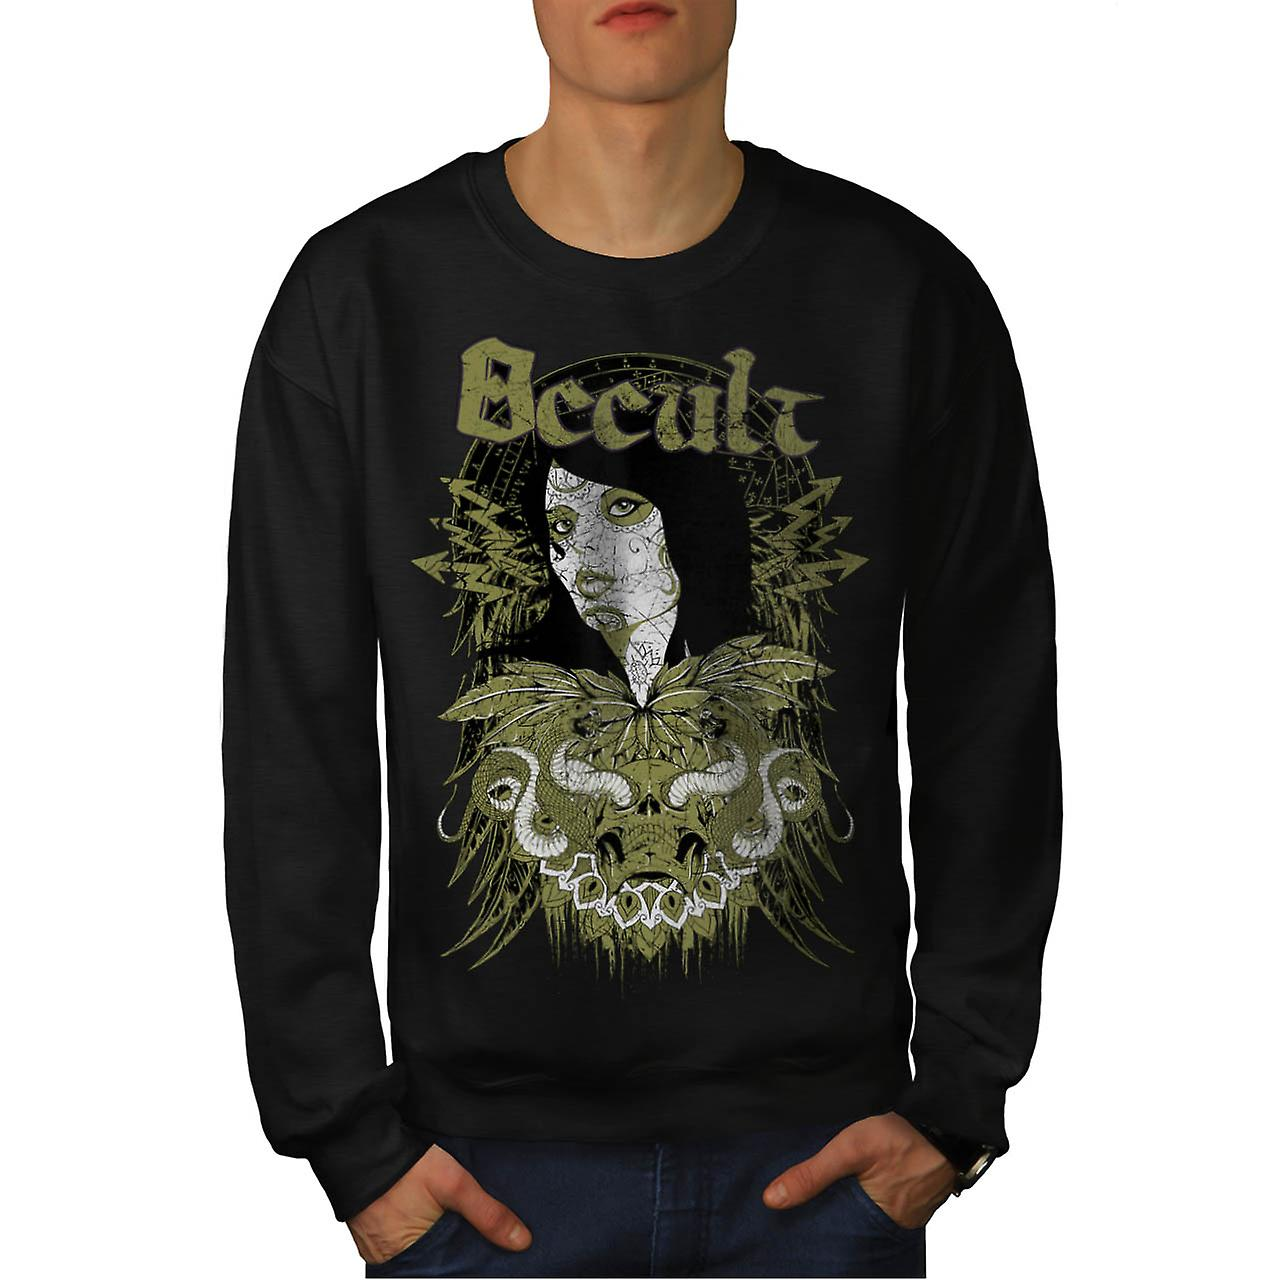 Occulte Cult Lady meisje Pout Model mannen zwart Sweatshirt | Wellcoda